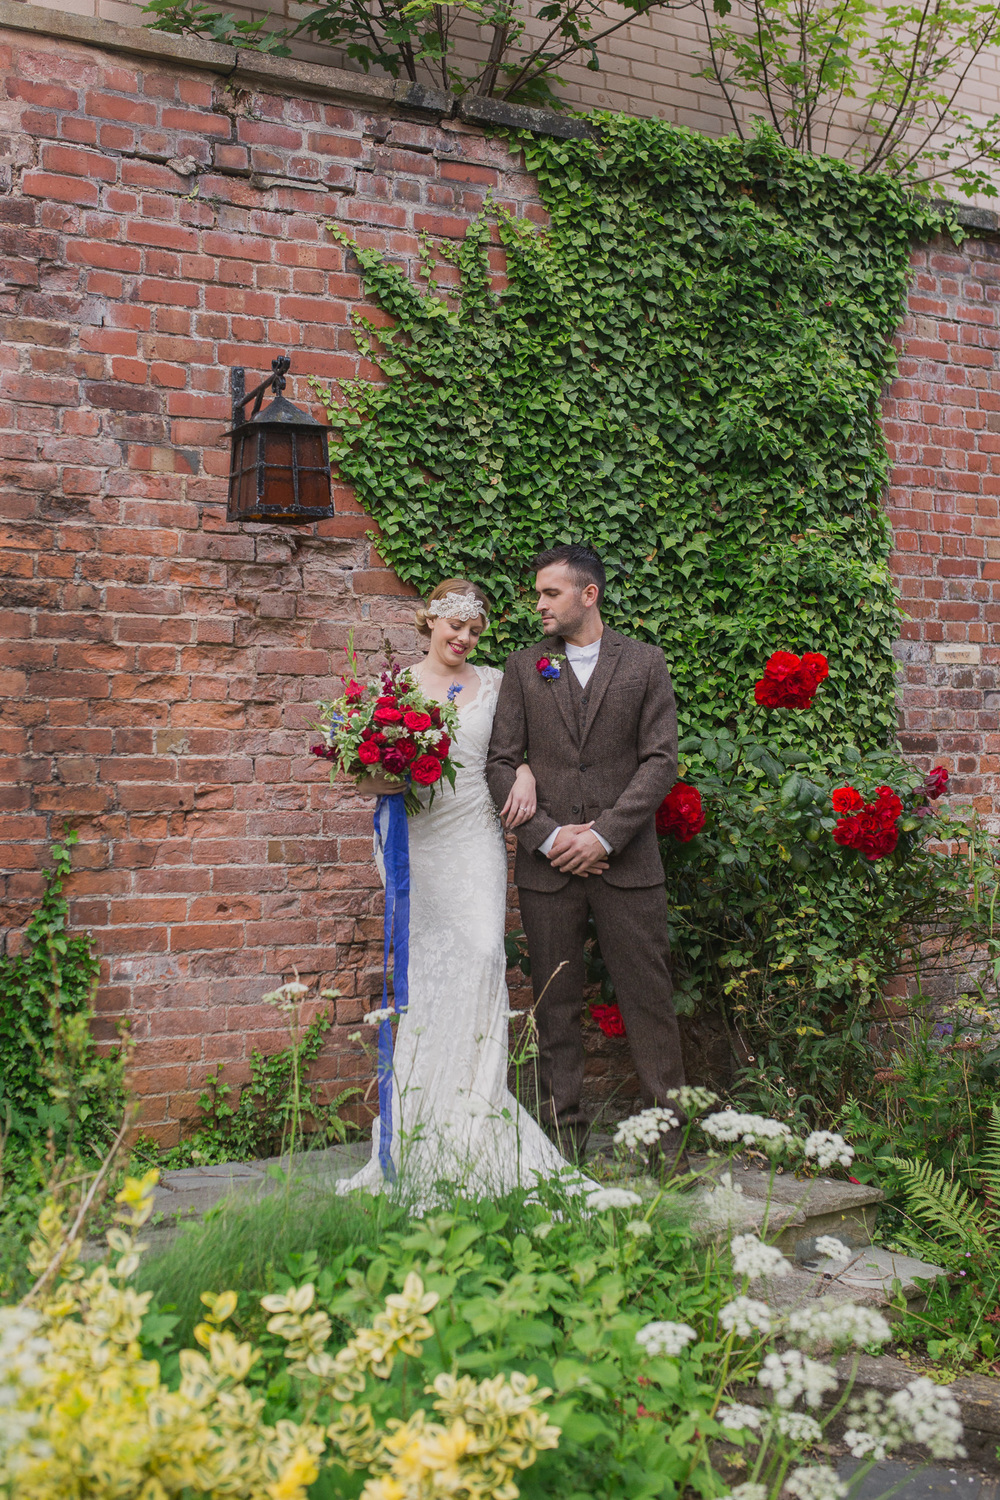 MorrisHall_Wedding_Photography_Shrewsbury-50.jpg